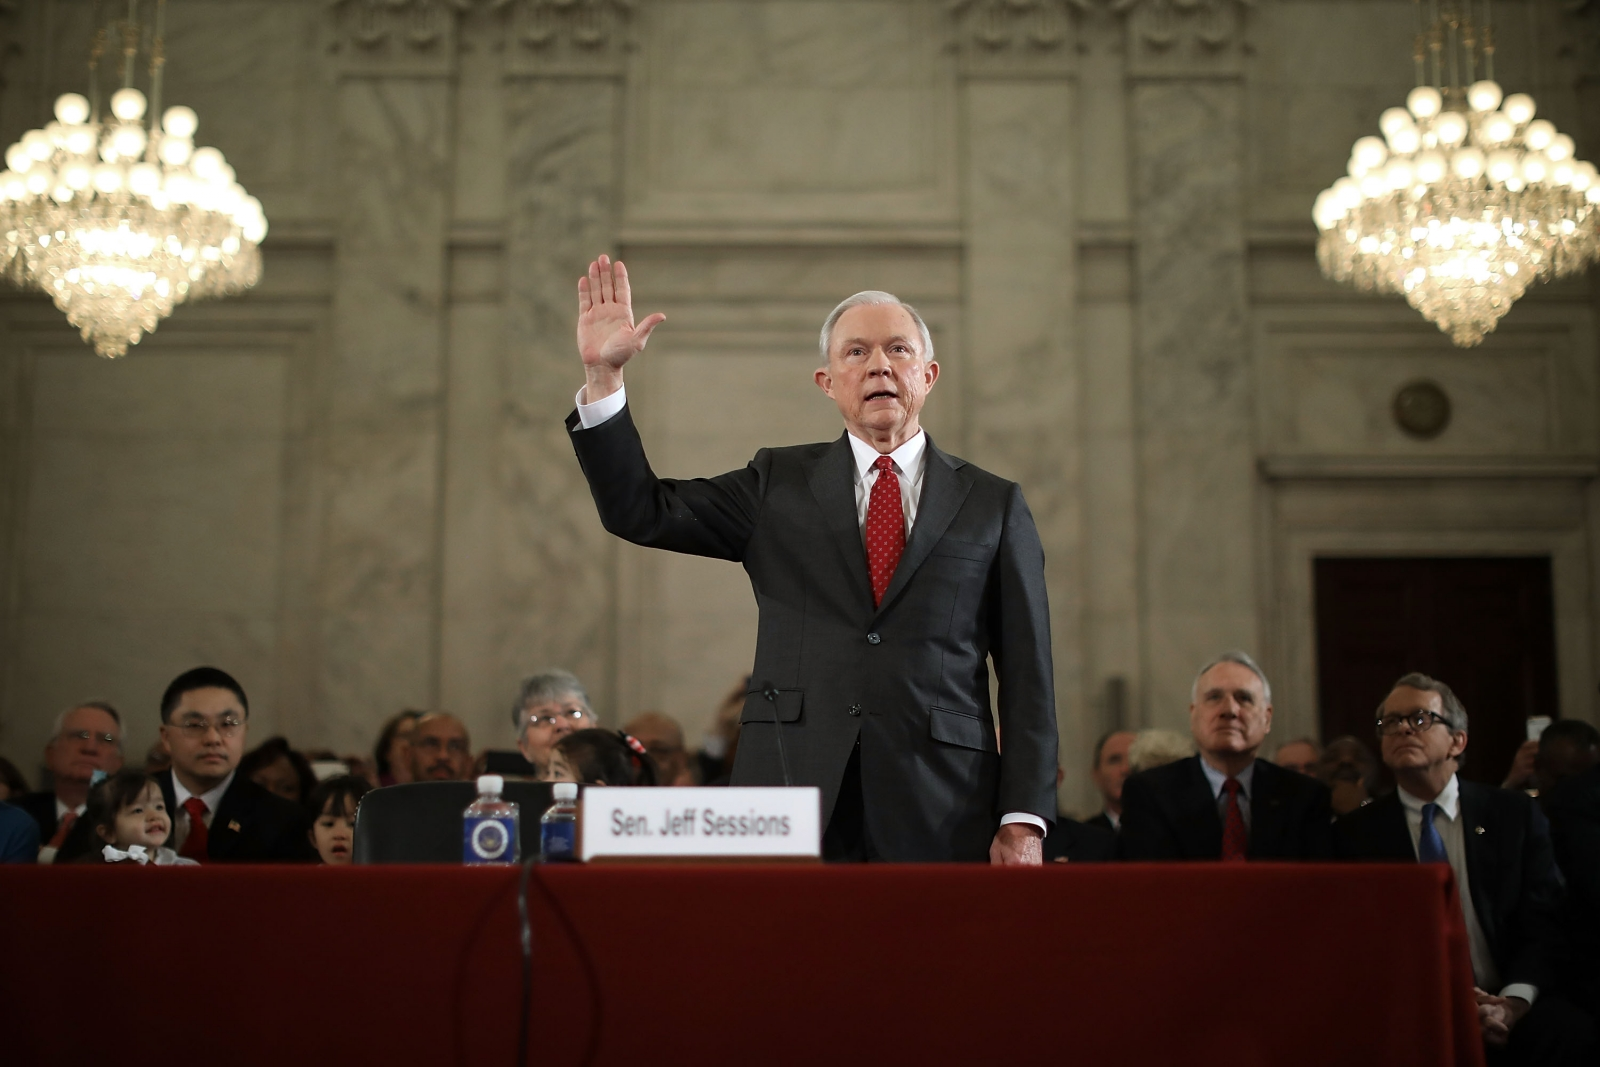 Jeff Sessions sworn in for confirmation hearing